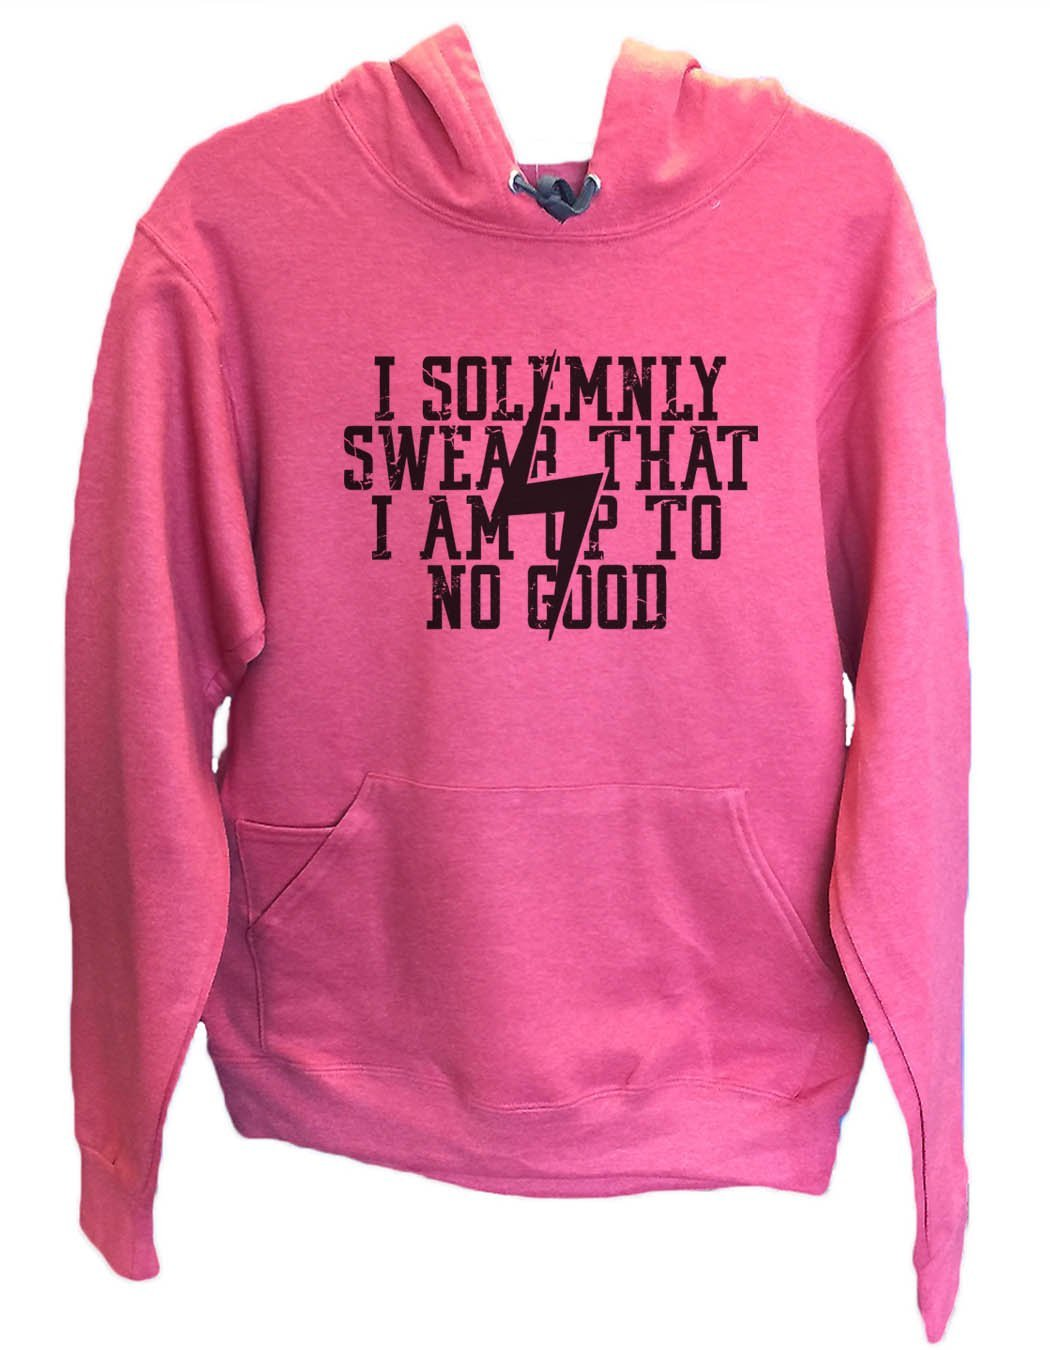 UNISEX HOODIE - I Solemnly Swear That I Am Up To No Good - FUNNY MENS AND WOMENS HOODED SWEATSHIRTS - 2136 Funny Shirt